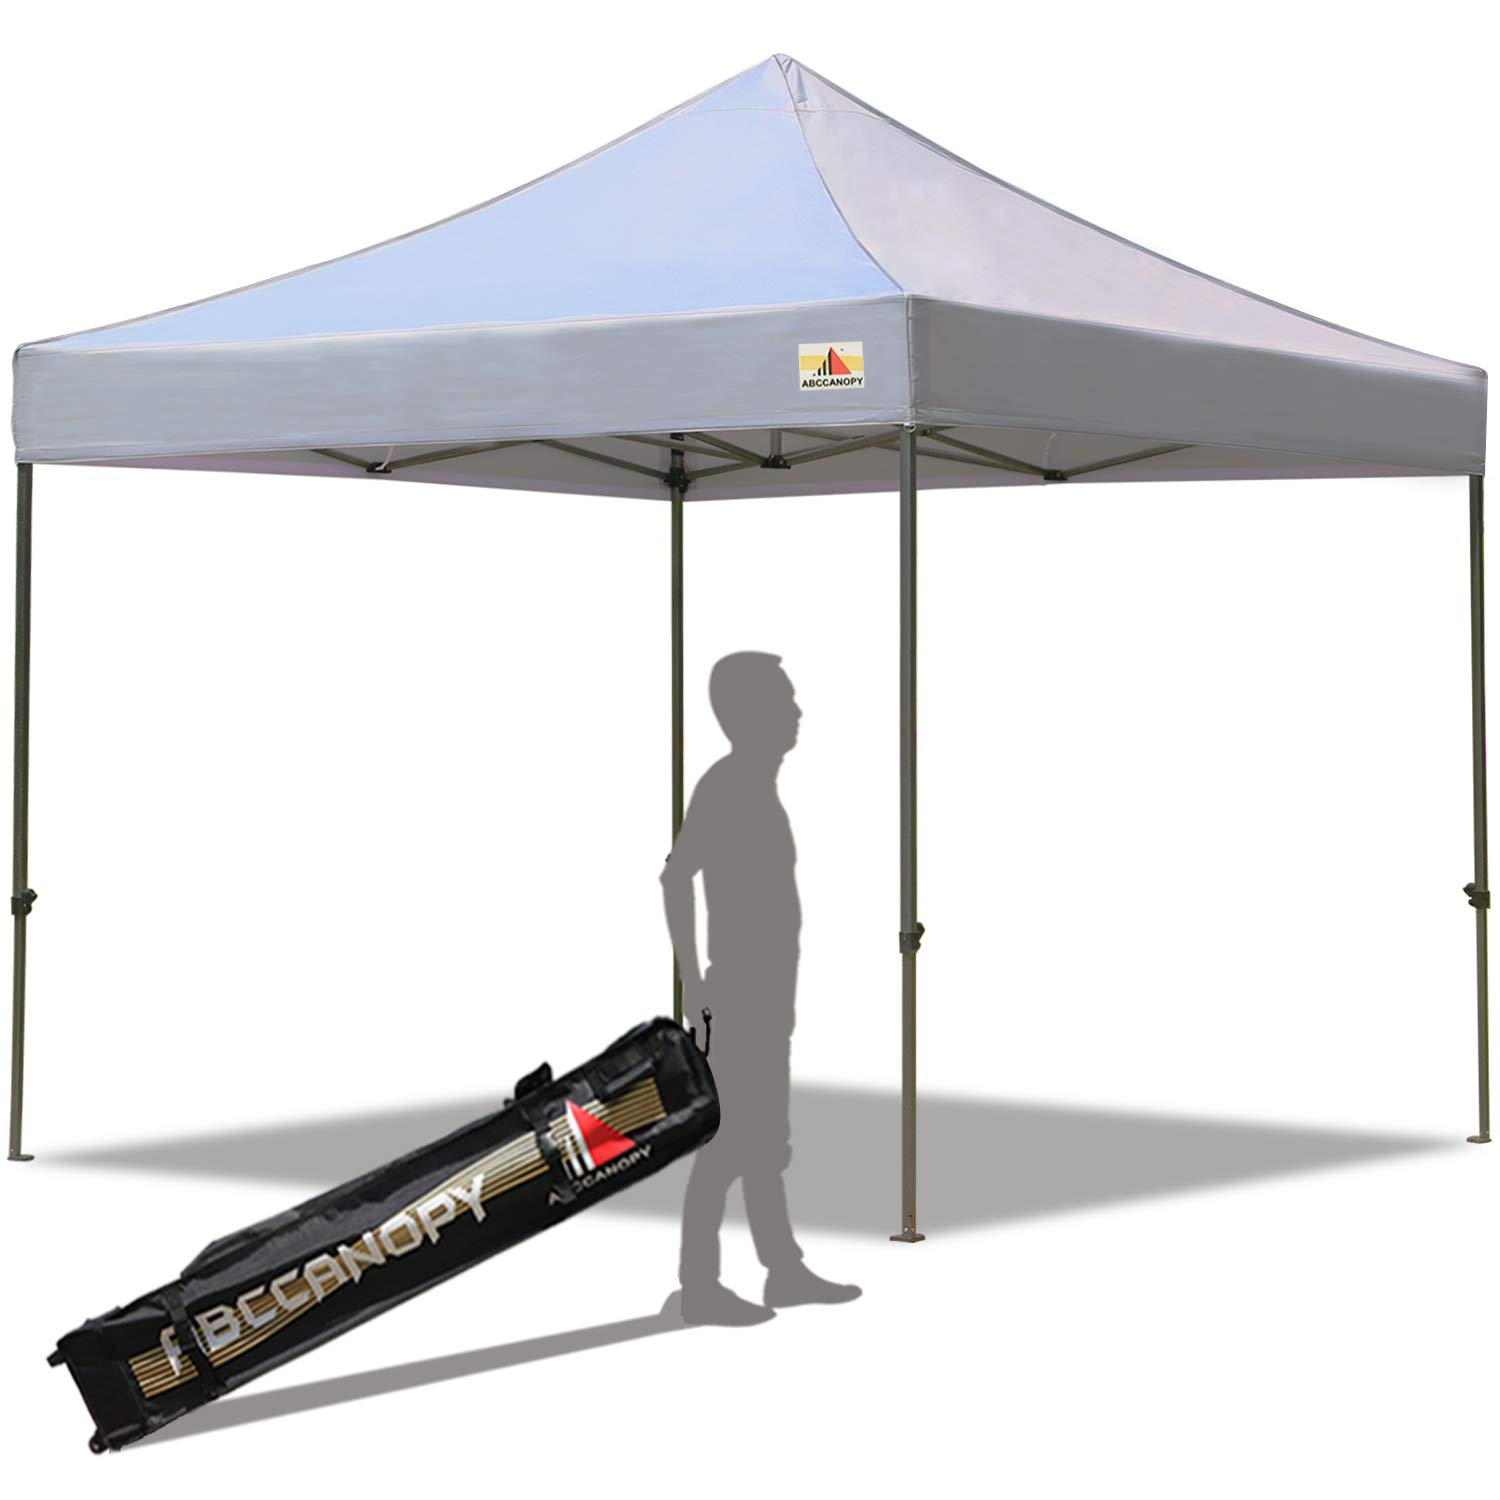 ABCCANOPY Pop up Canopy Tent Commercial Instant Shelter with Wheeled Carry Bag, 10x10 FT Gray